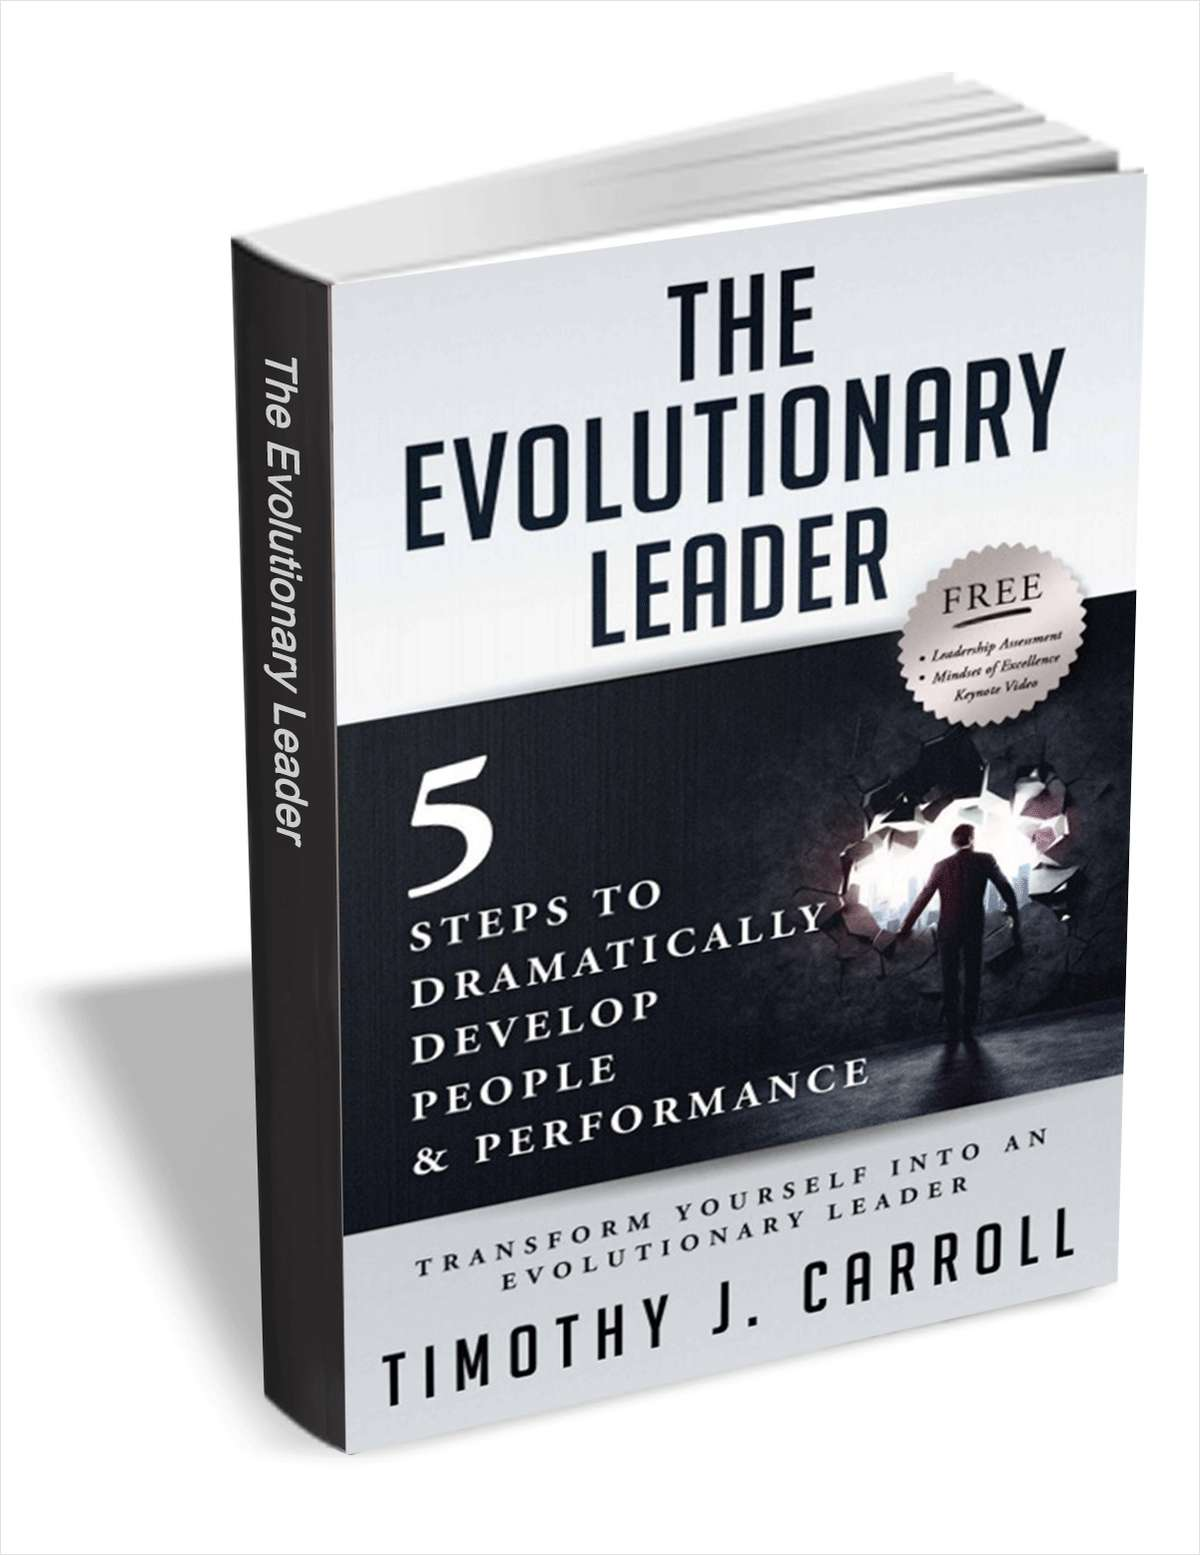 The Evolutionary Leader ($9.95 Value) FREE For a Limited Time